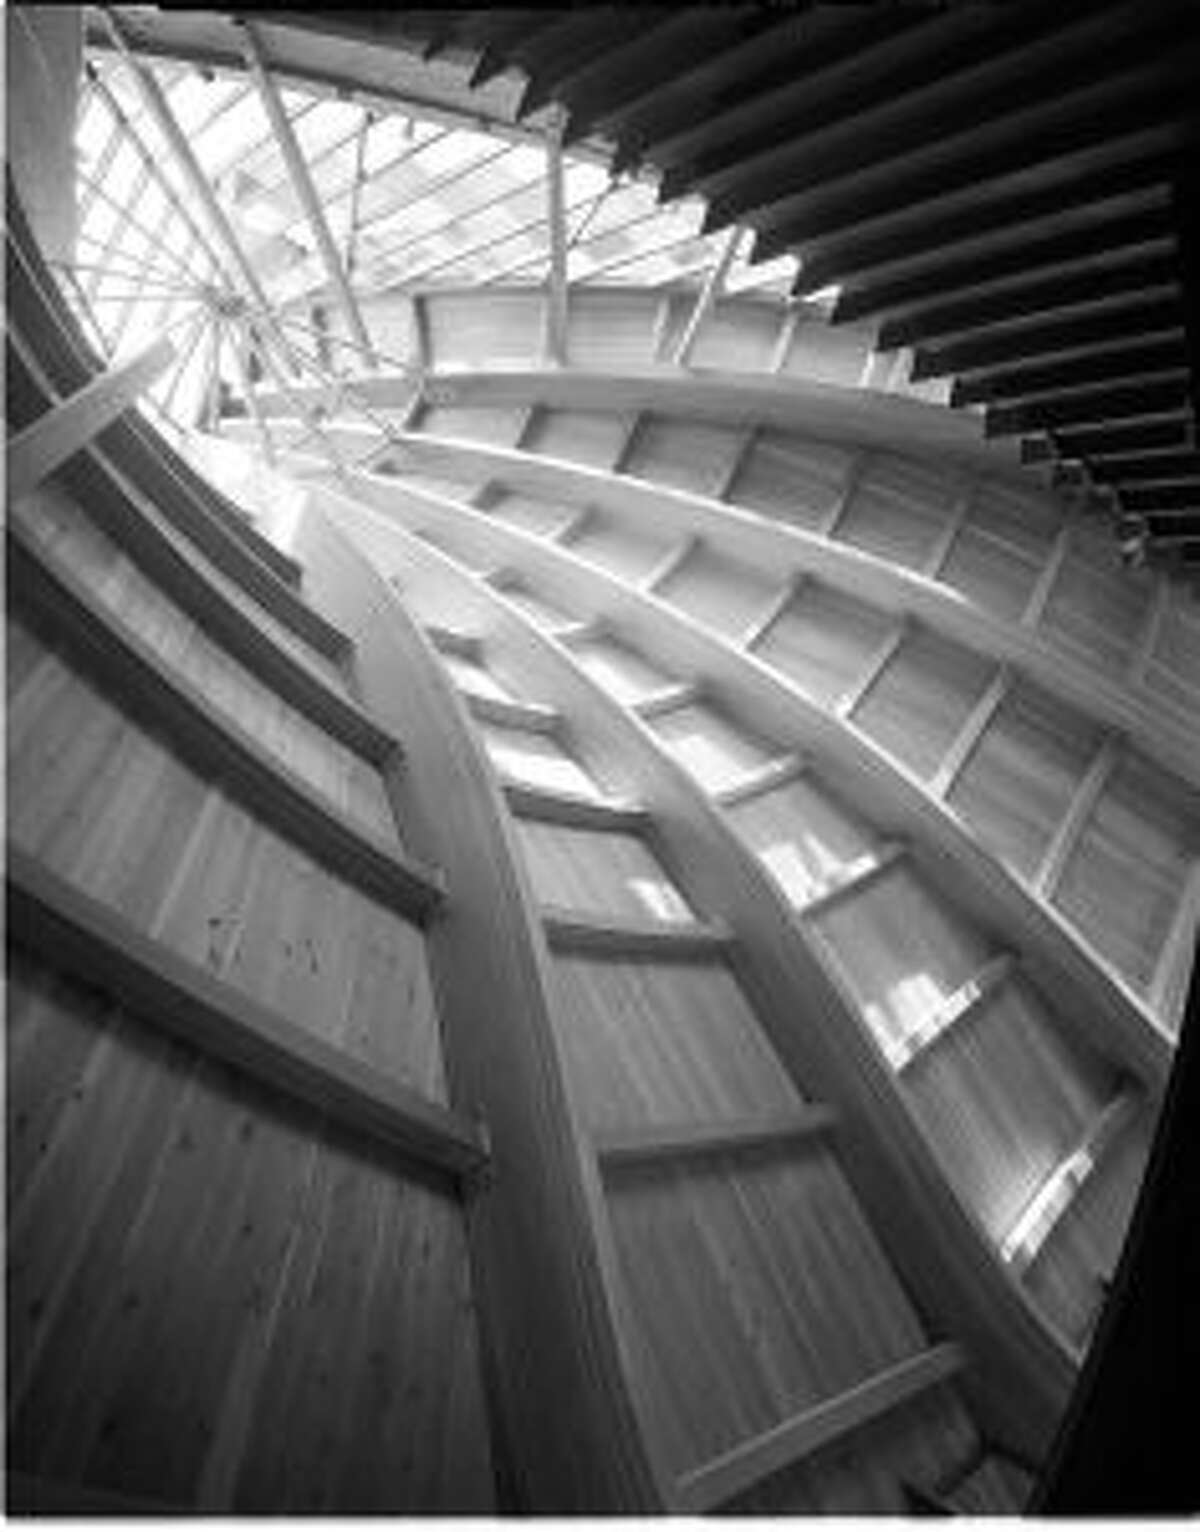 Interior shot by Pedro E. Guerrero (1917-2012) of United Church of Rowayton, Roof Detail, Rowayton, CT, 1962. Joseph P. Salerno, Architect. Silver Gelatin Print. -Copyright the Estate of Pedro E. Guerrero and courtesy Edward Cella Gallery